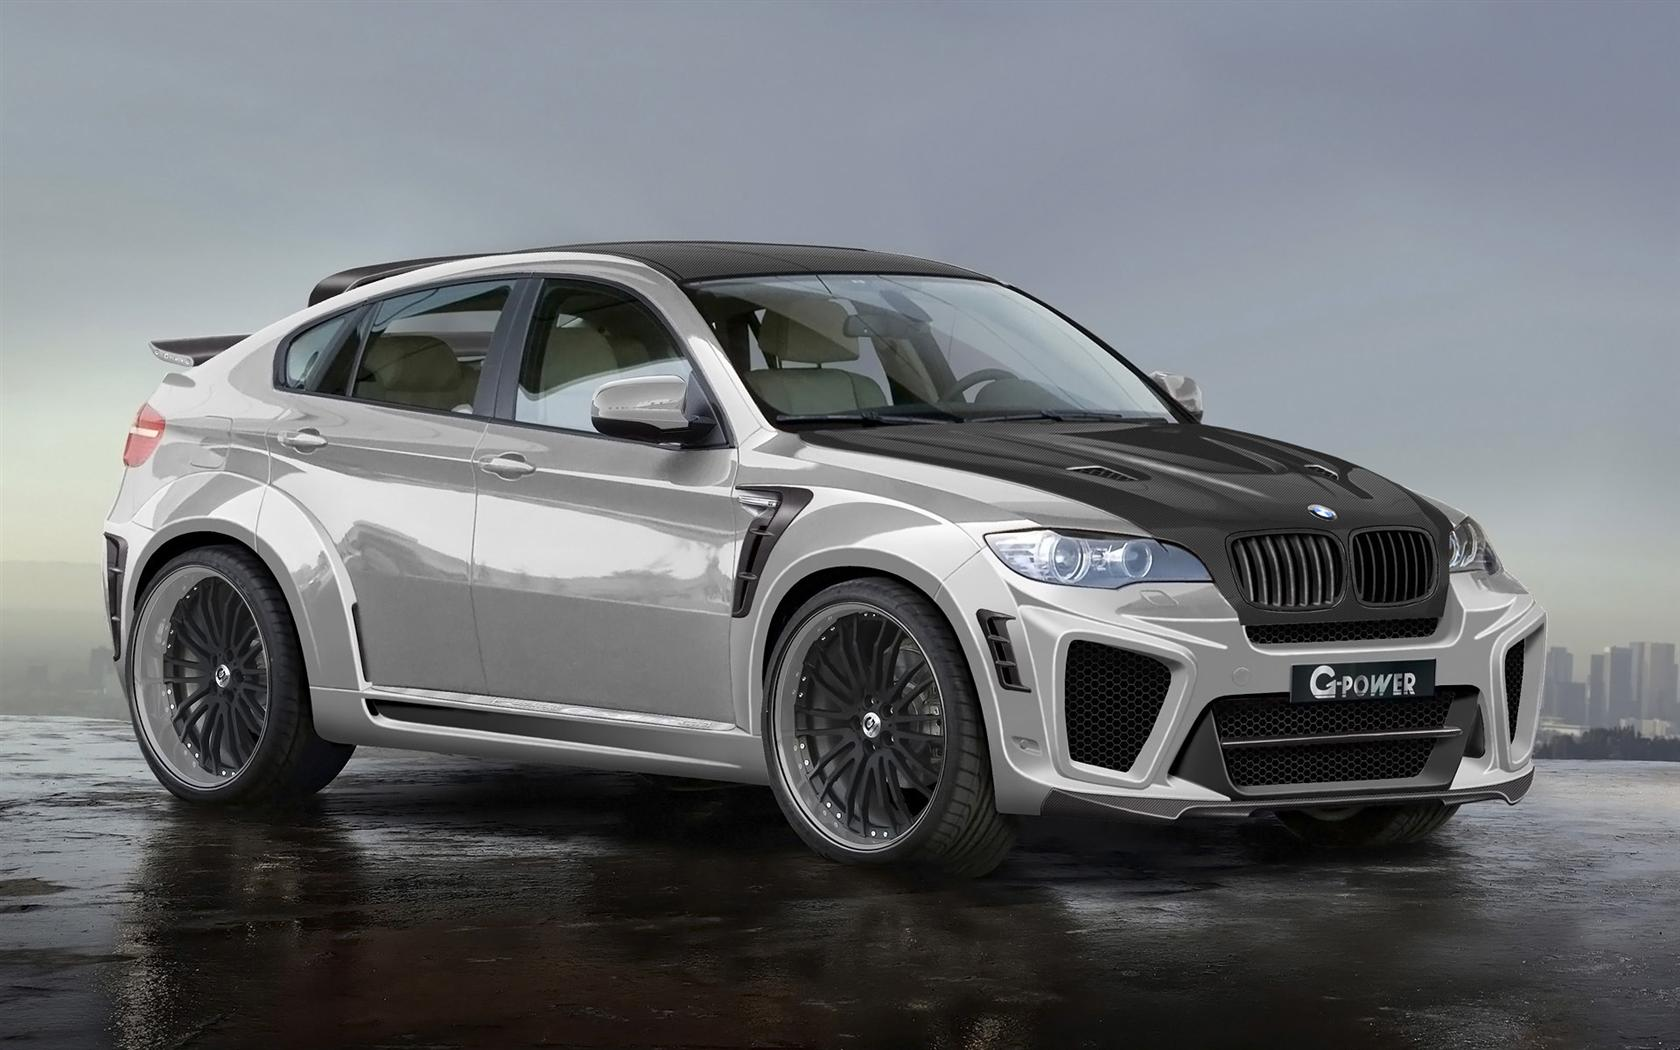 2010 G Power X6 Typhoon Rs Ultimate Image Photo 4 Of 4